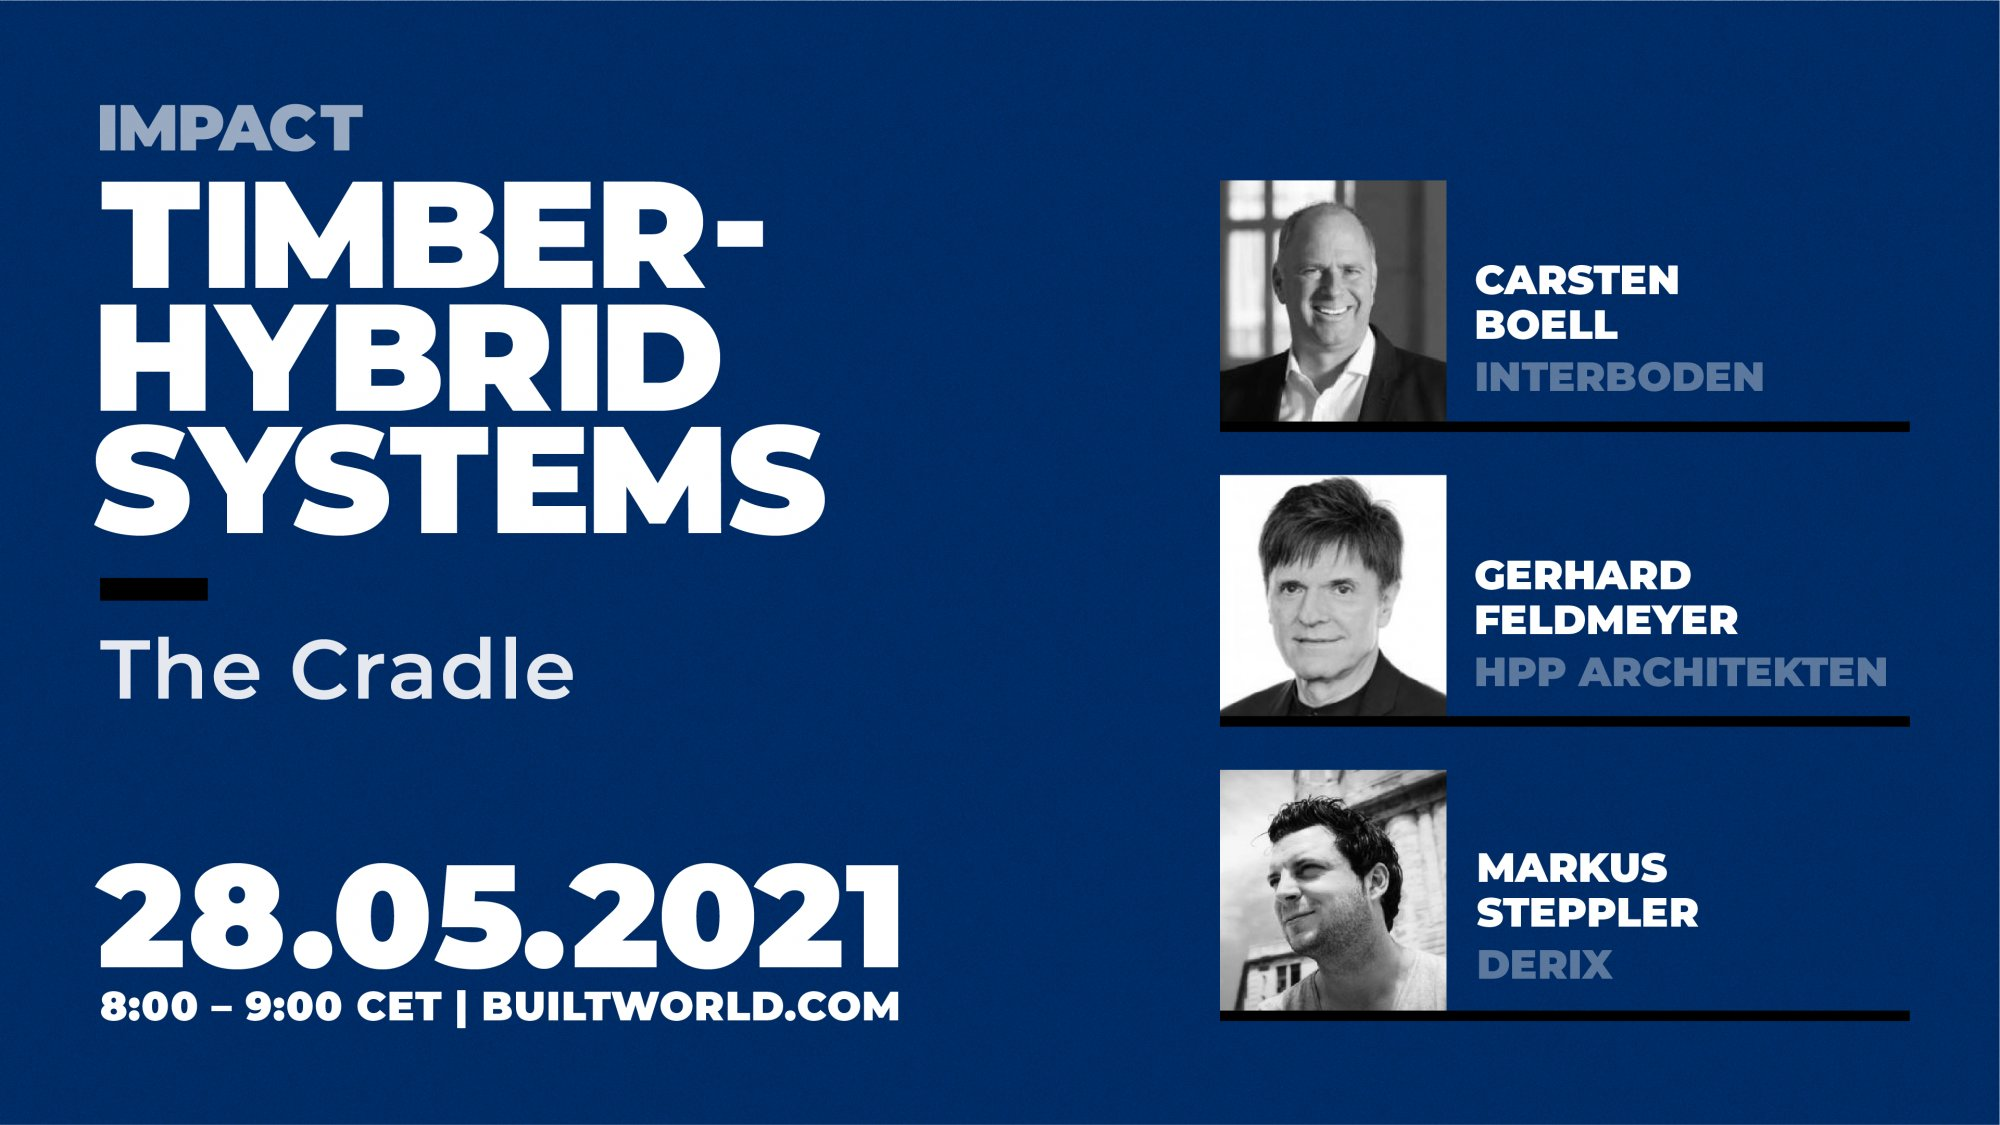 timber-hybrid-systems-the-cradle